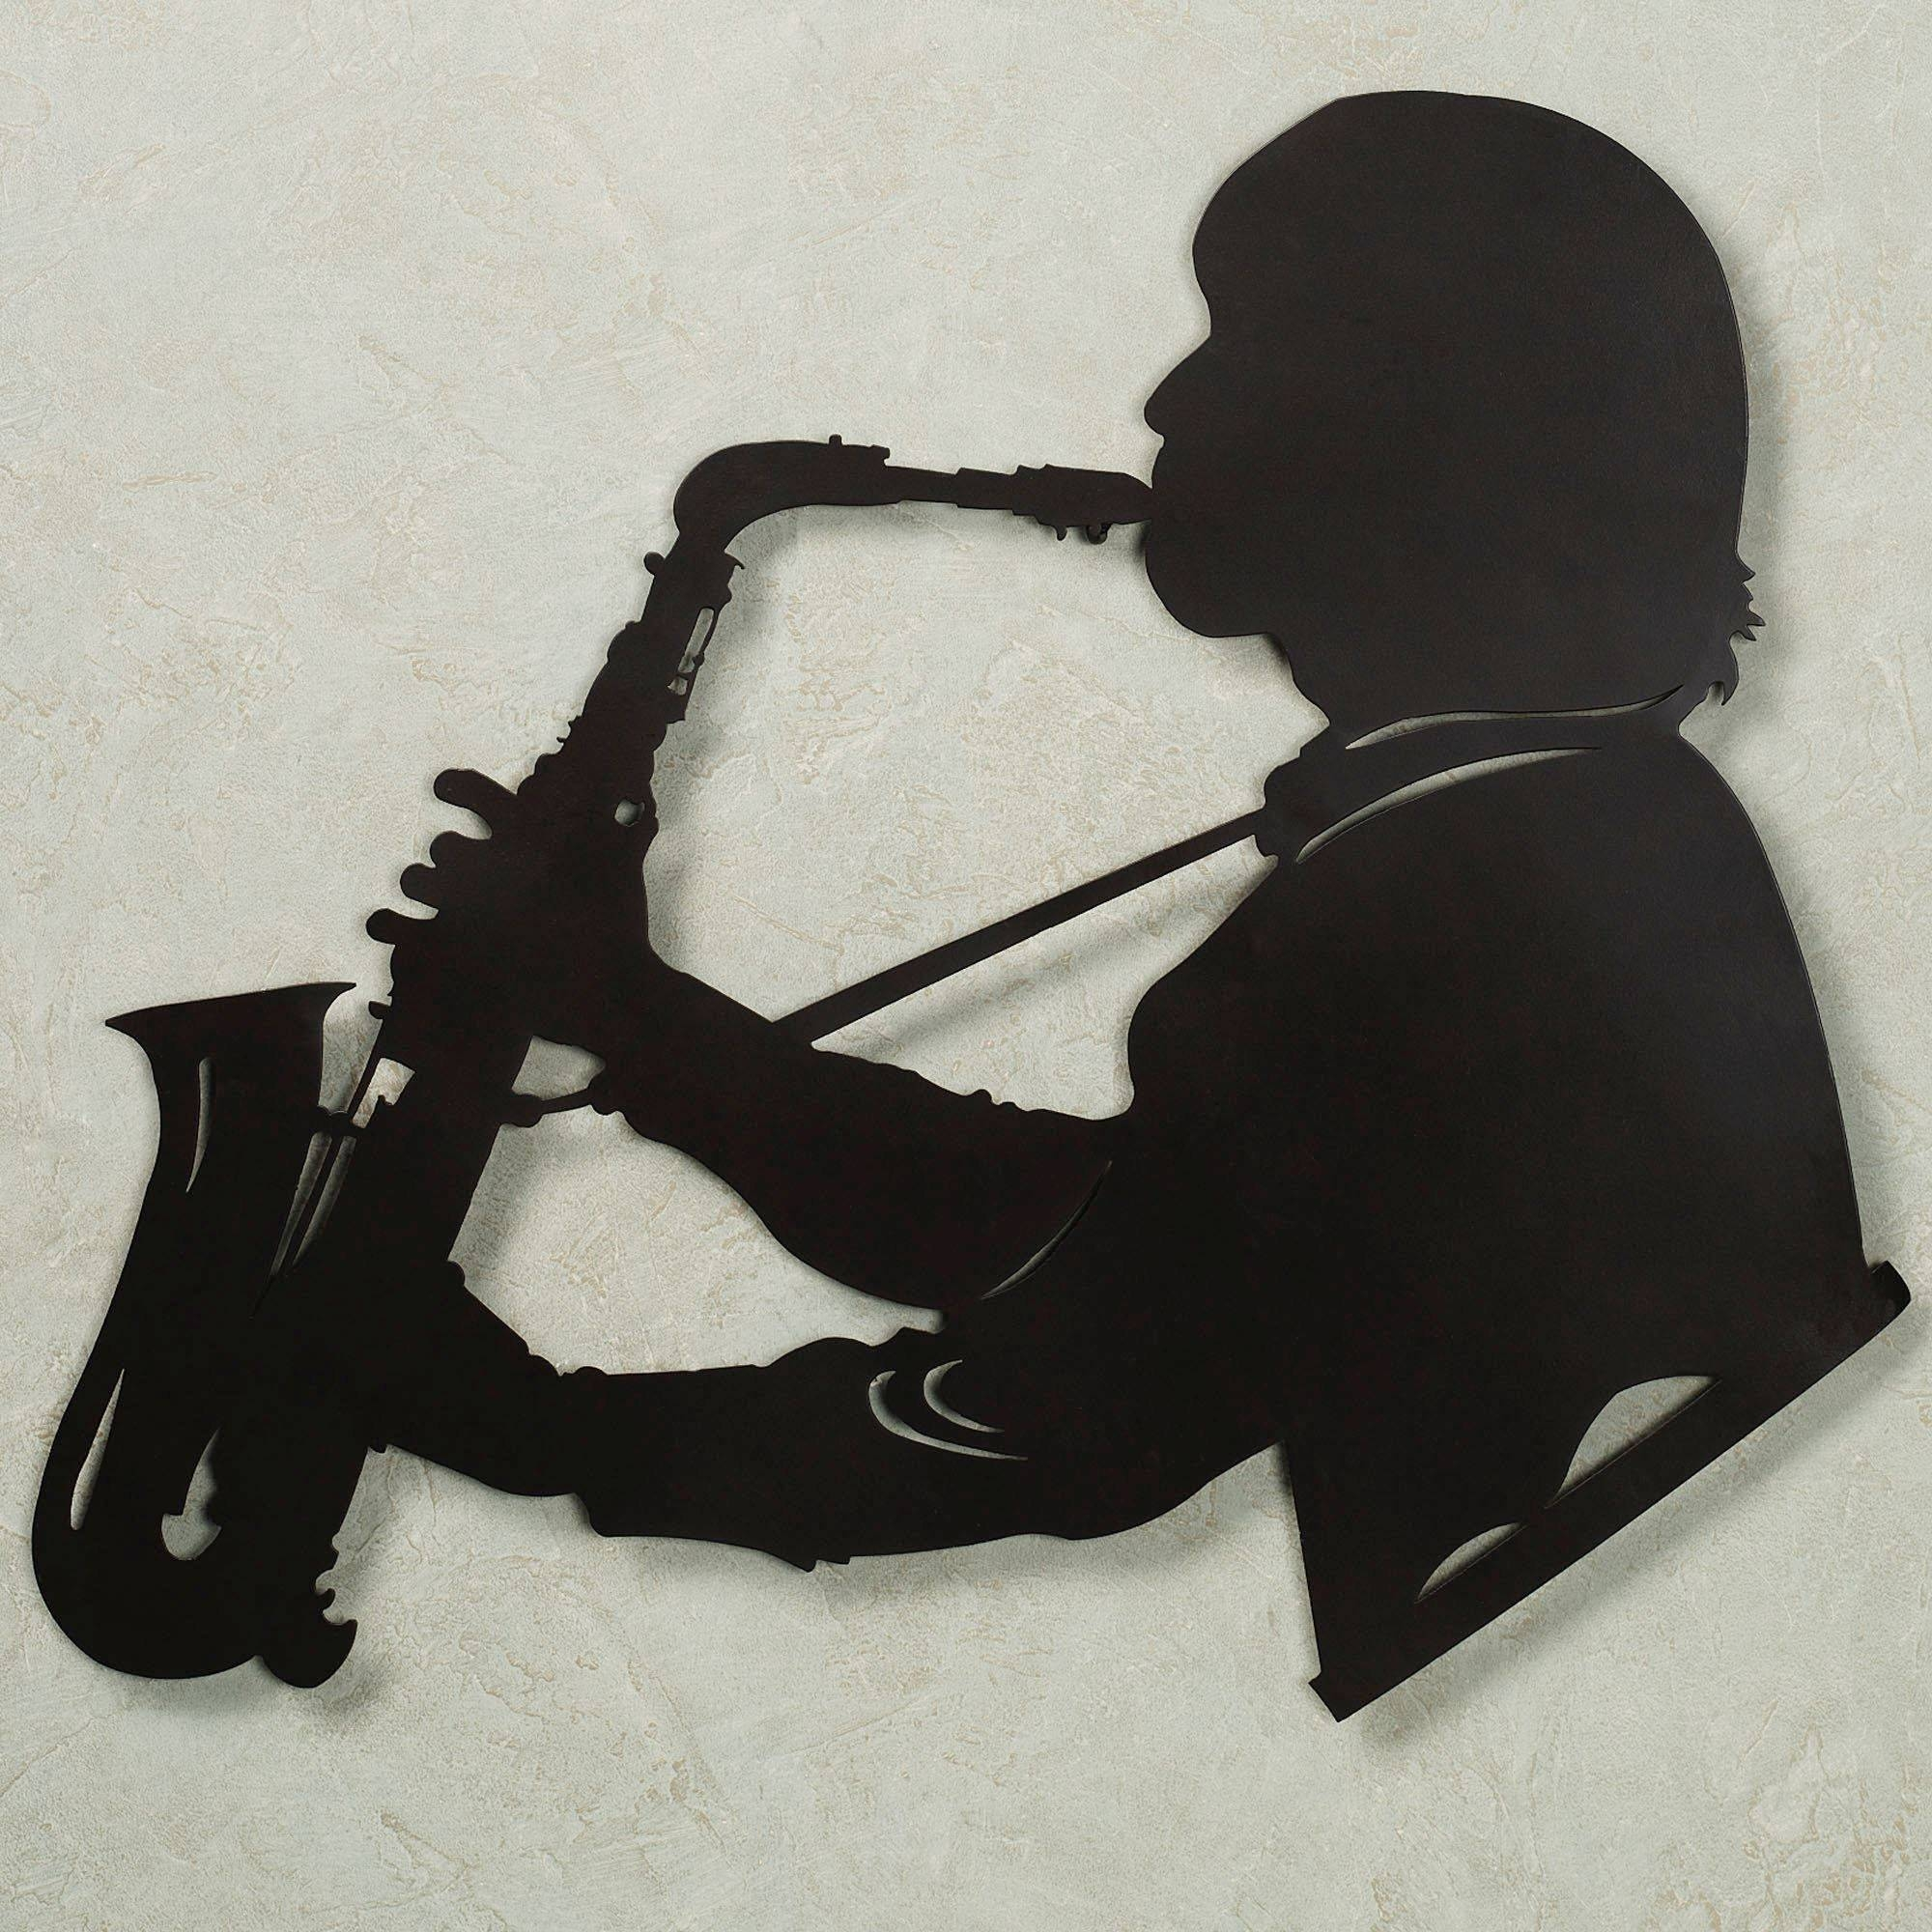 Saxophone Vibes Metal Wall Art Regarding Latest Jazz Metal Wall Art (View 11 of 20)